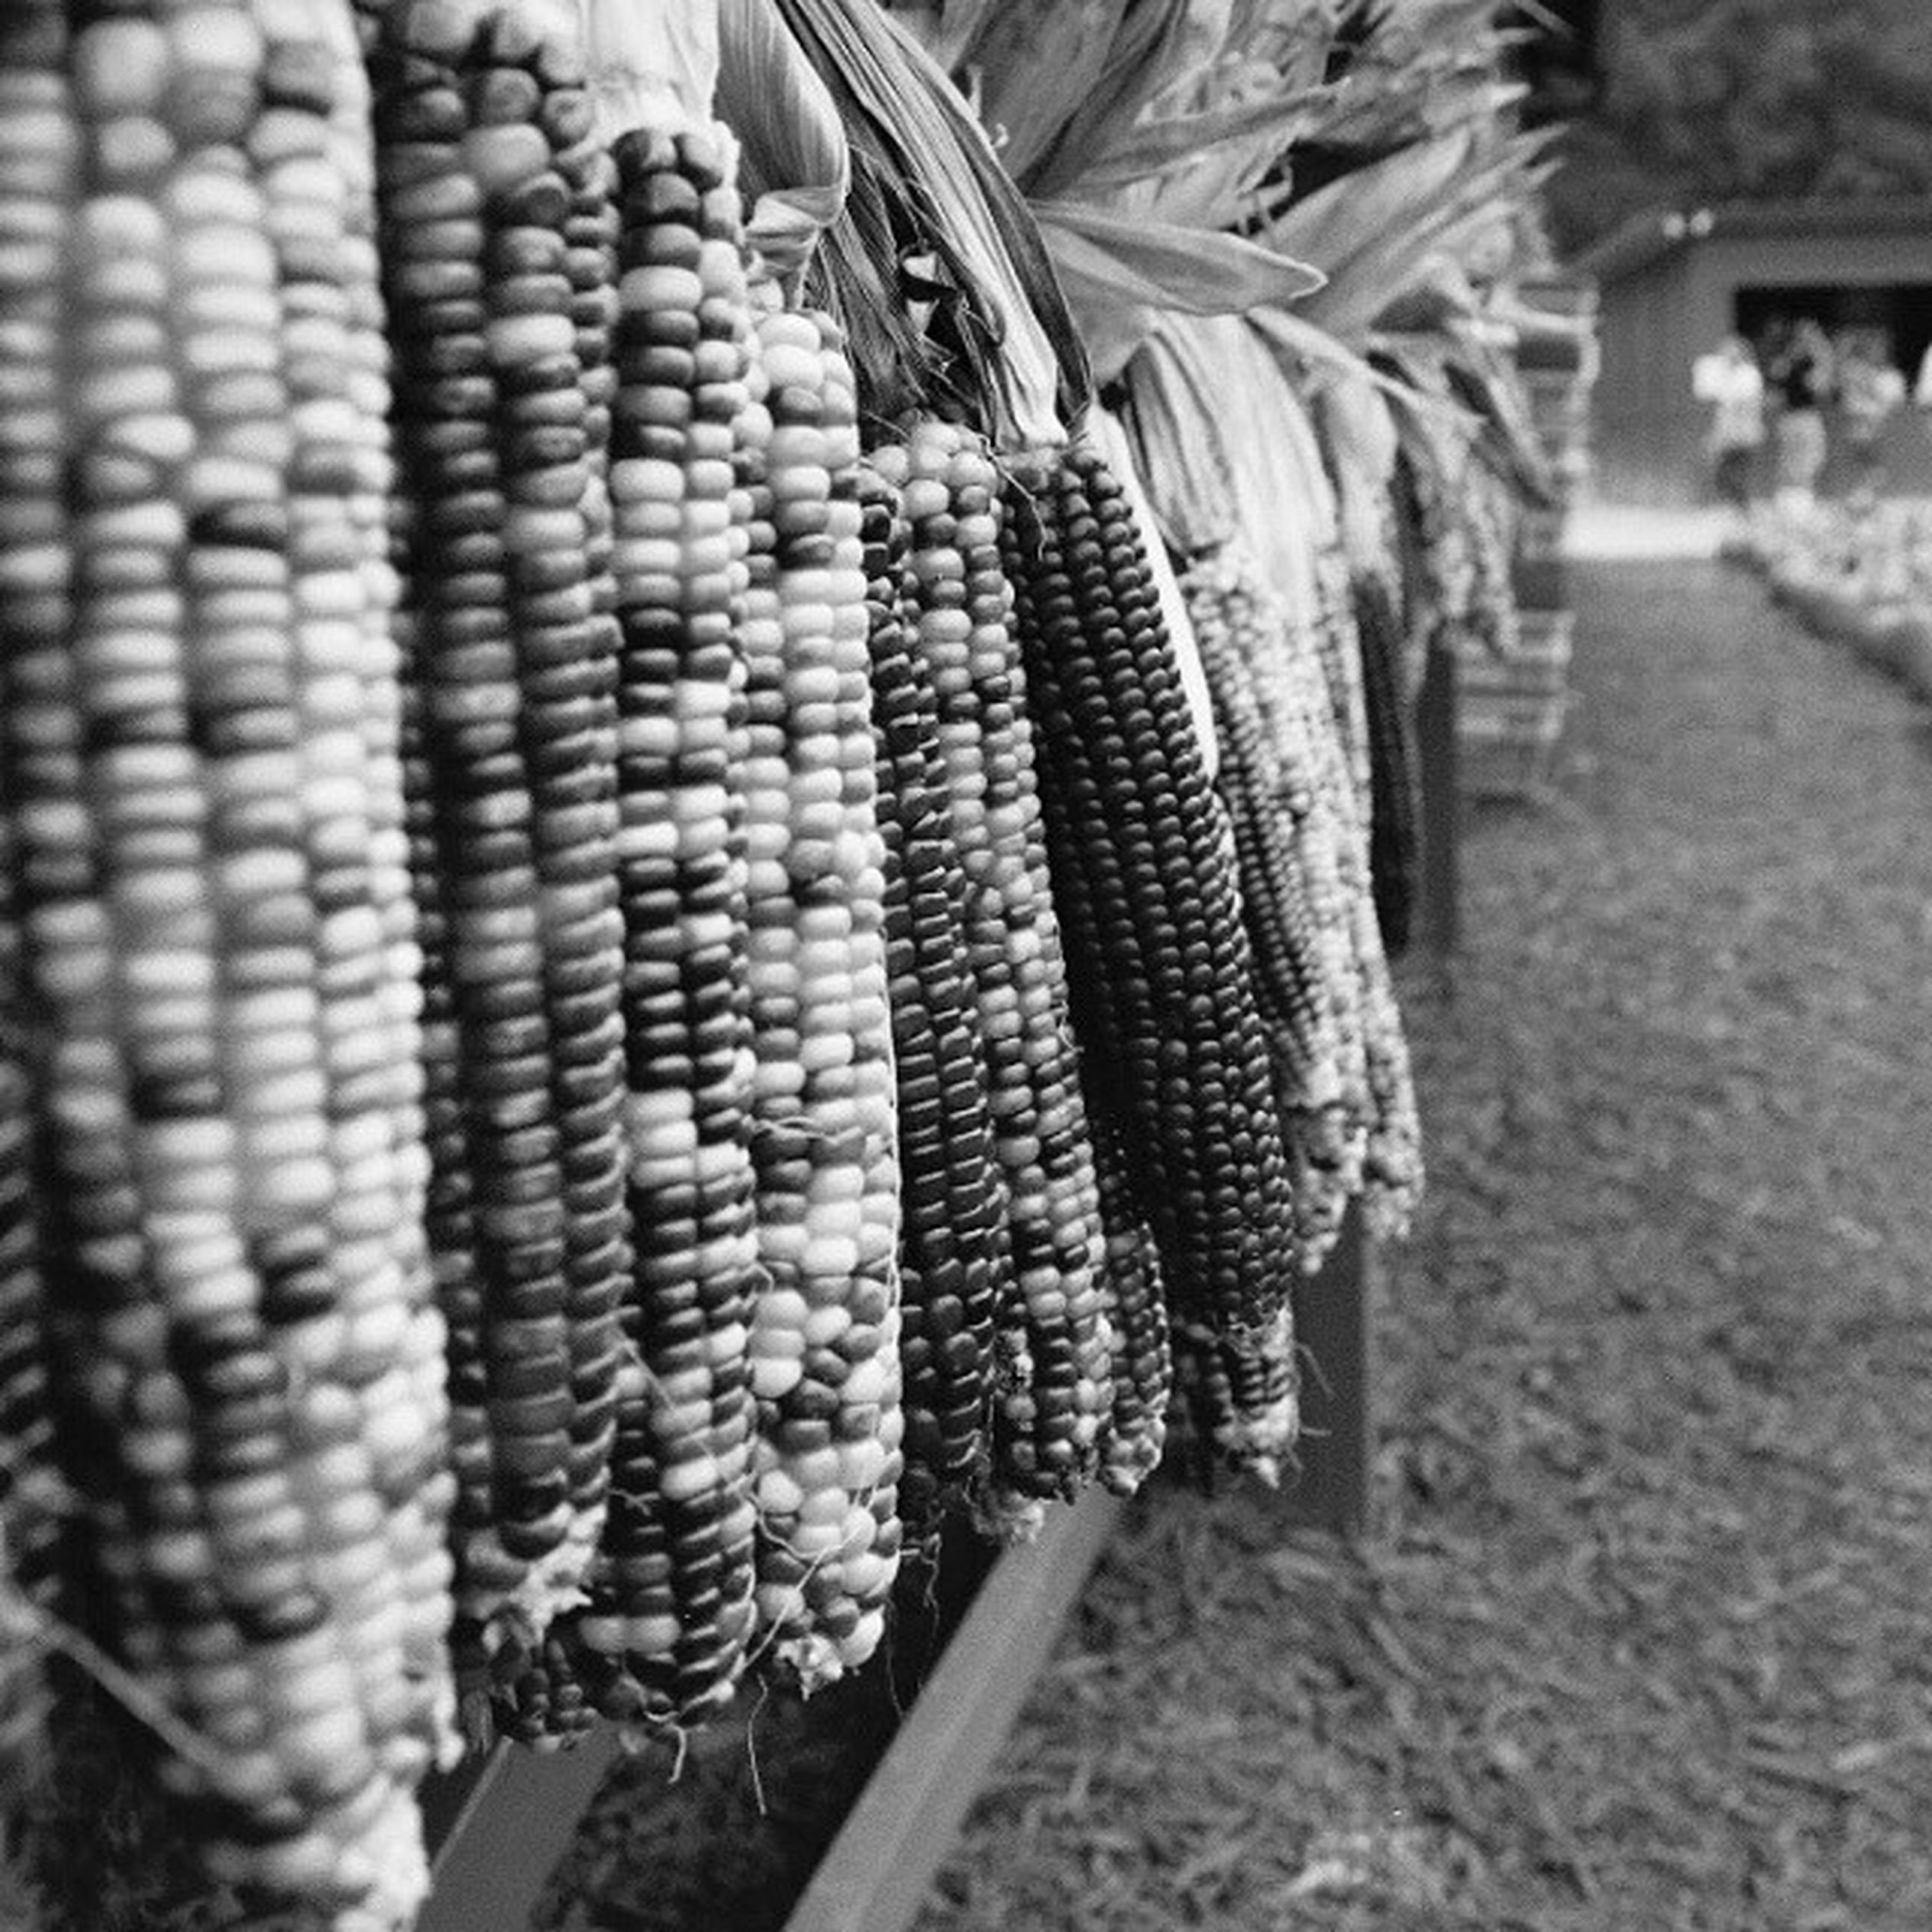 for sale, retail, focus on foreground, market stall, market, large group of objects, food, freshness, food and drink, abundance, close-up, hanging, day, outdoors, healthy eating, selective focus, in a row, variation, basket, choice